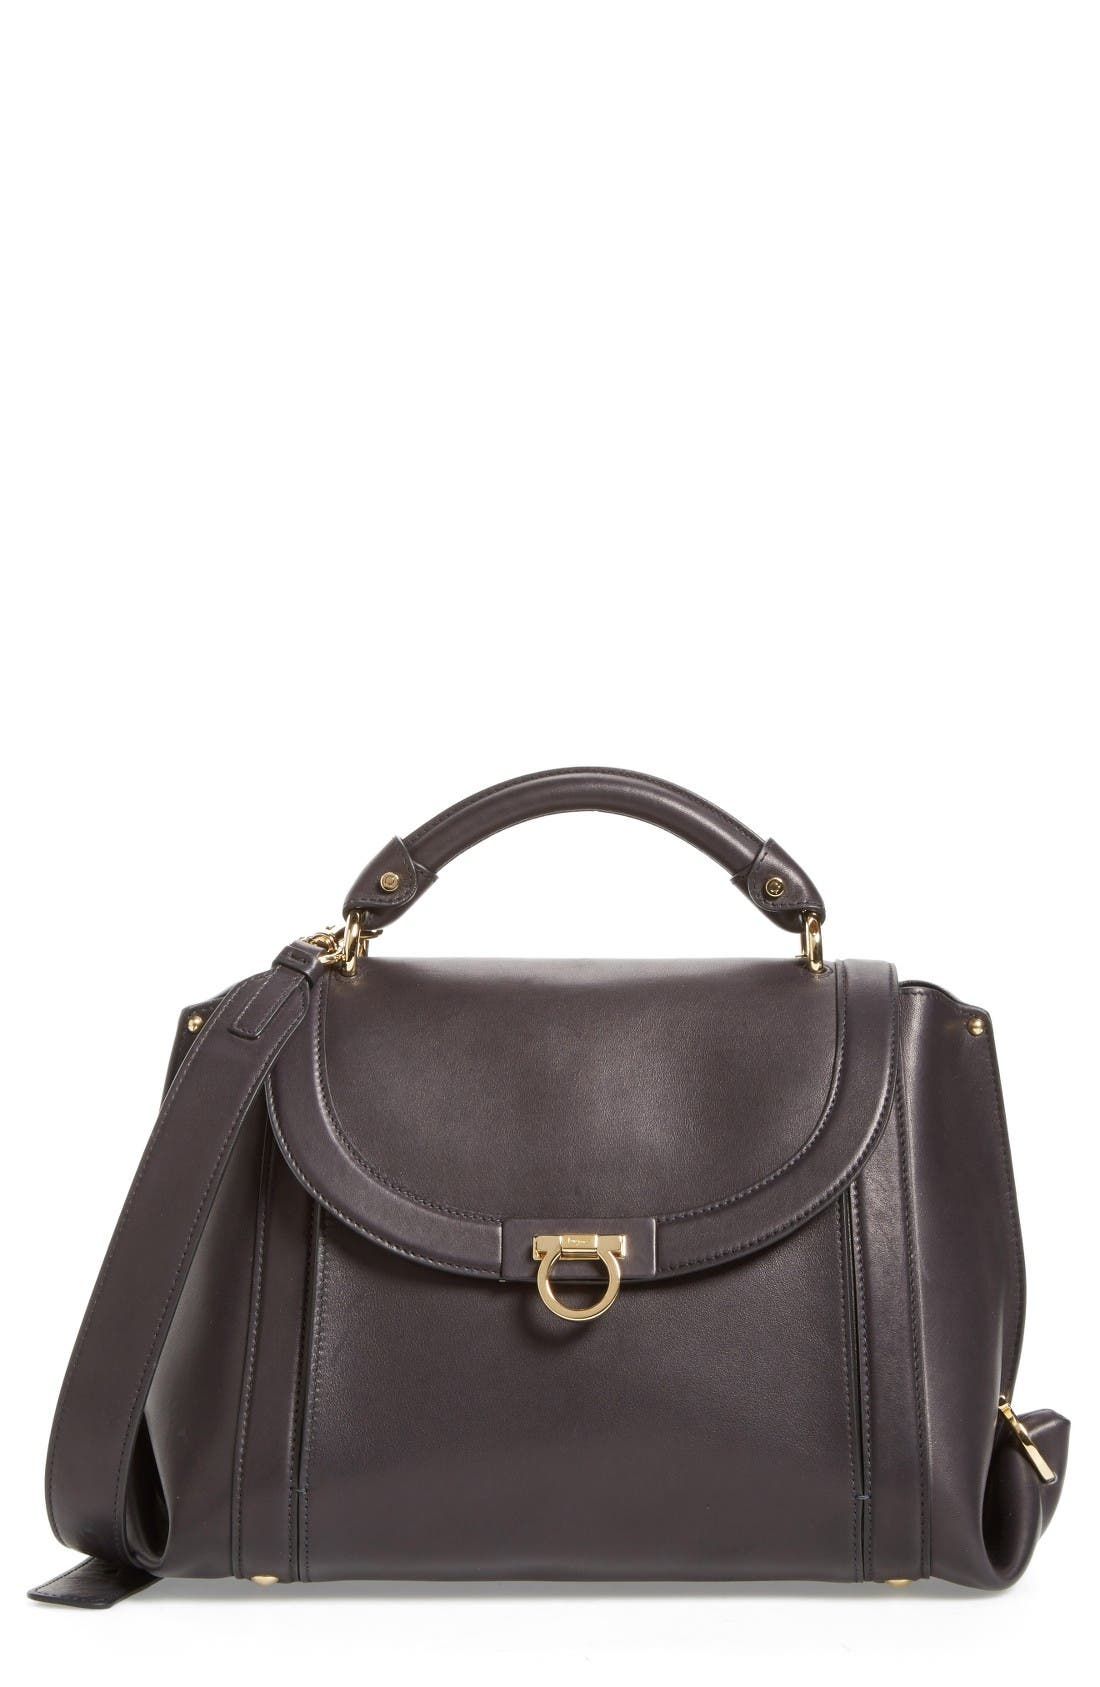 Salvatore Ferragamo Medium Suzanna Leather Satchel